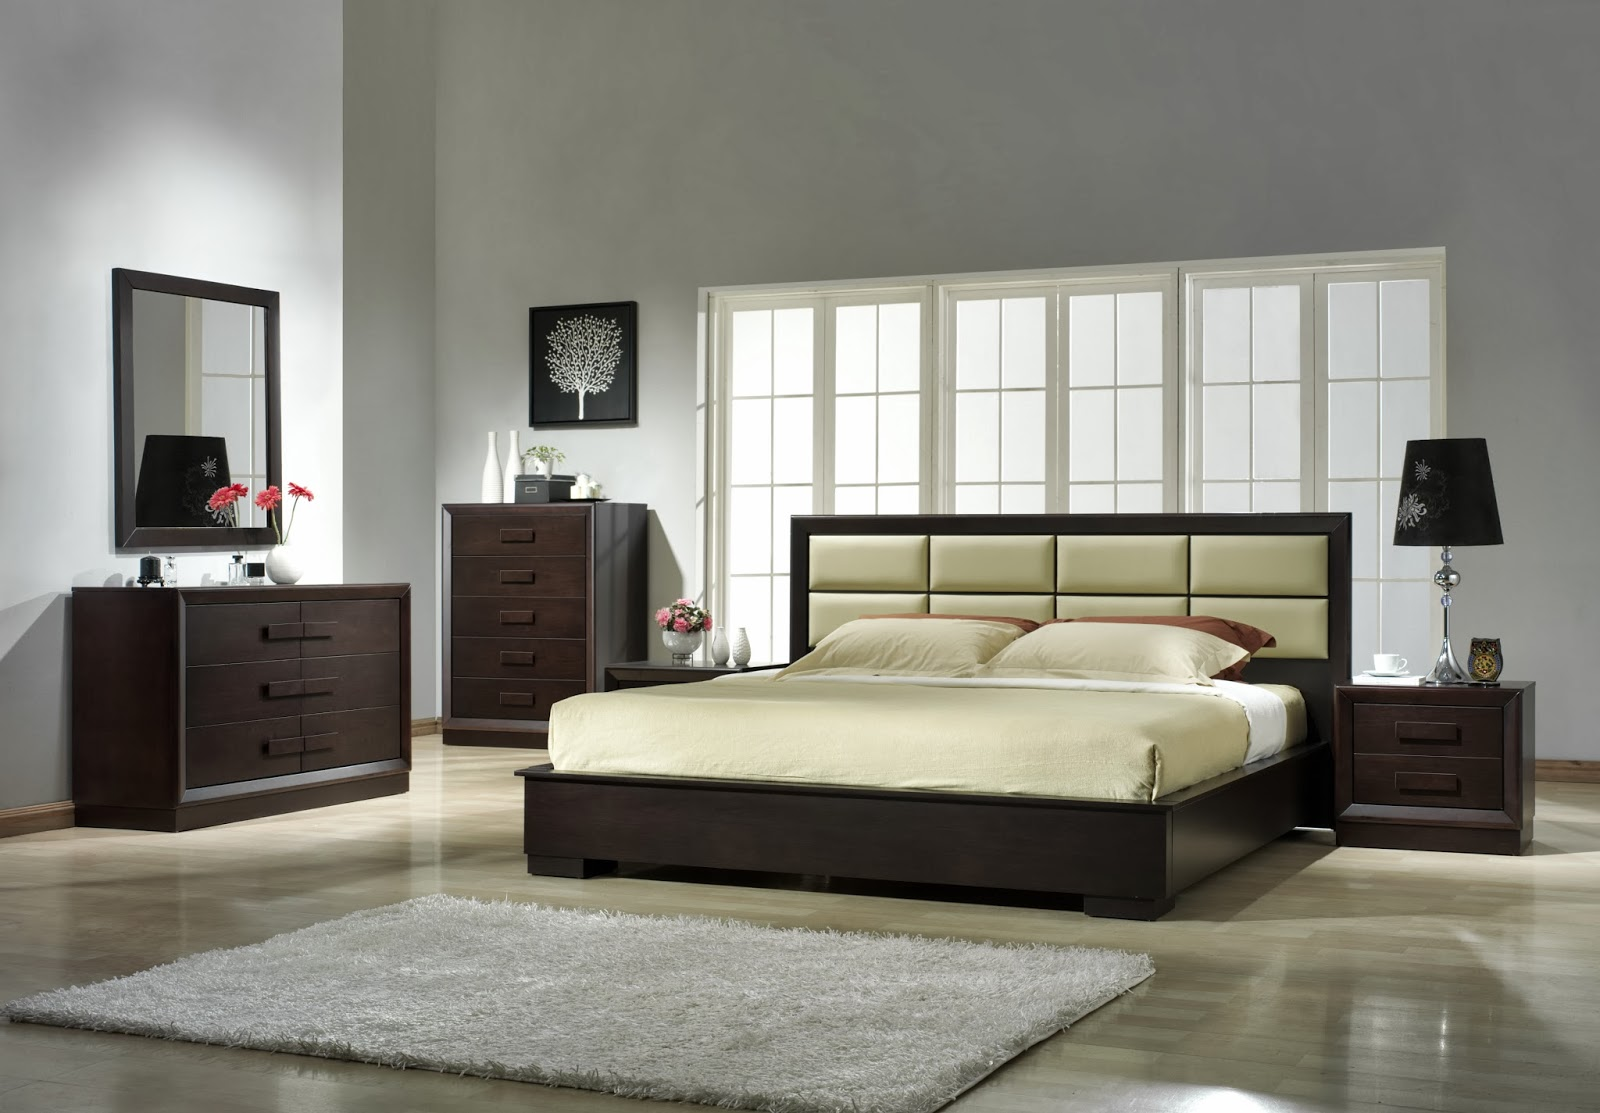 How to Find The Cheap Bedroom Furniture